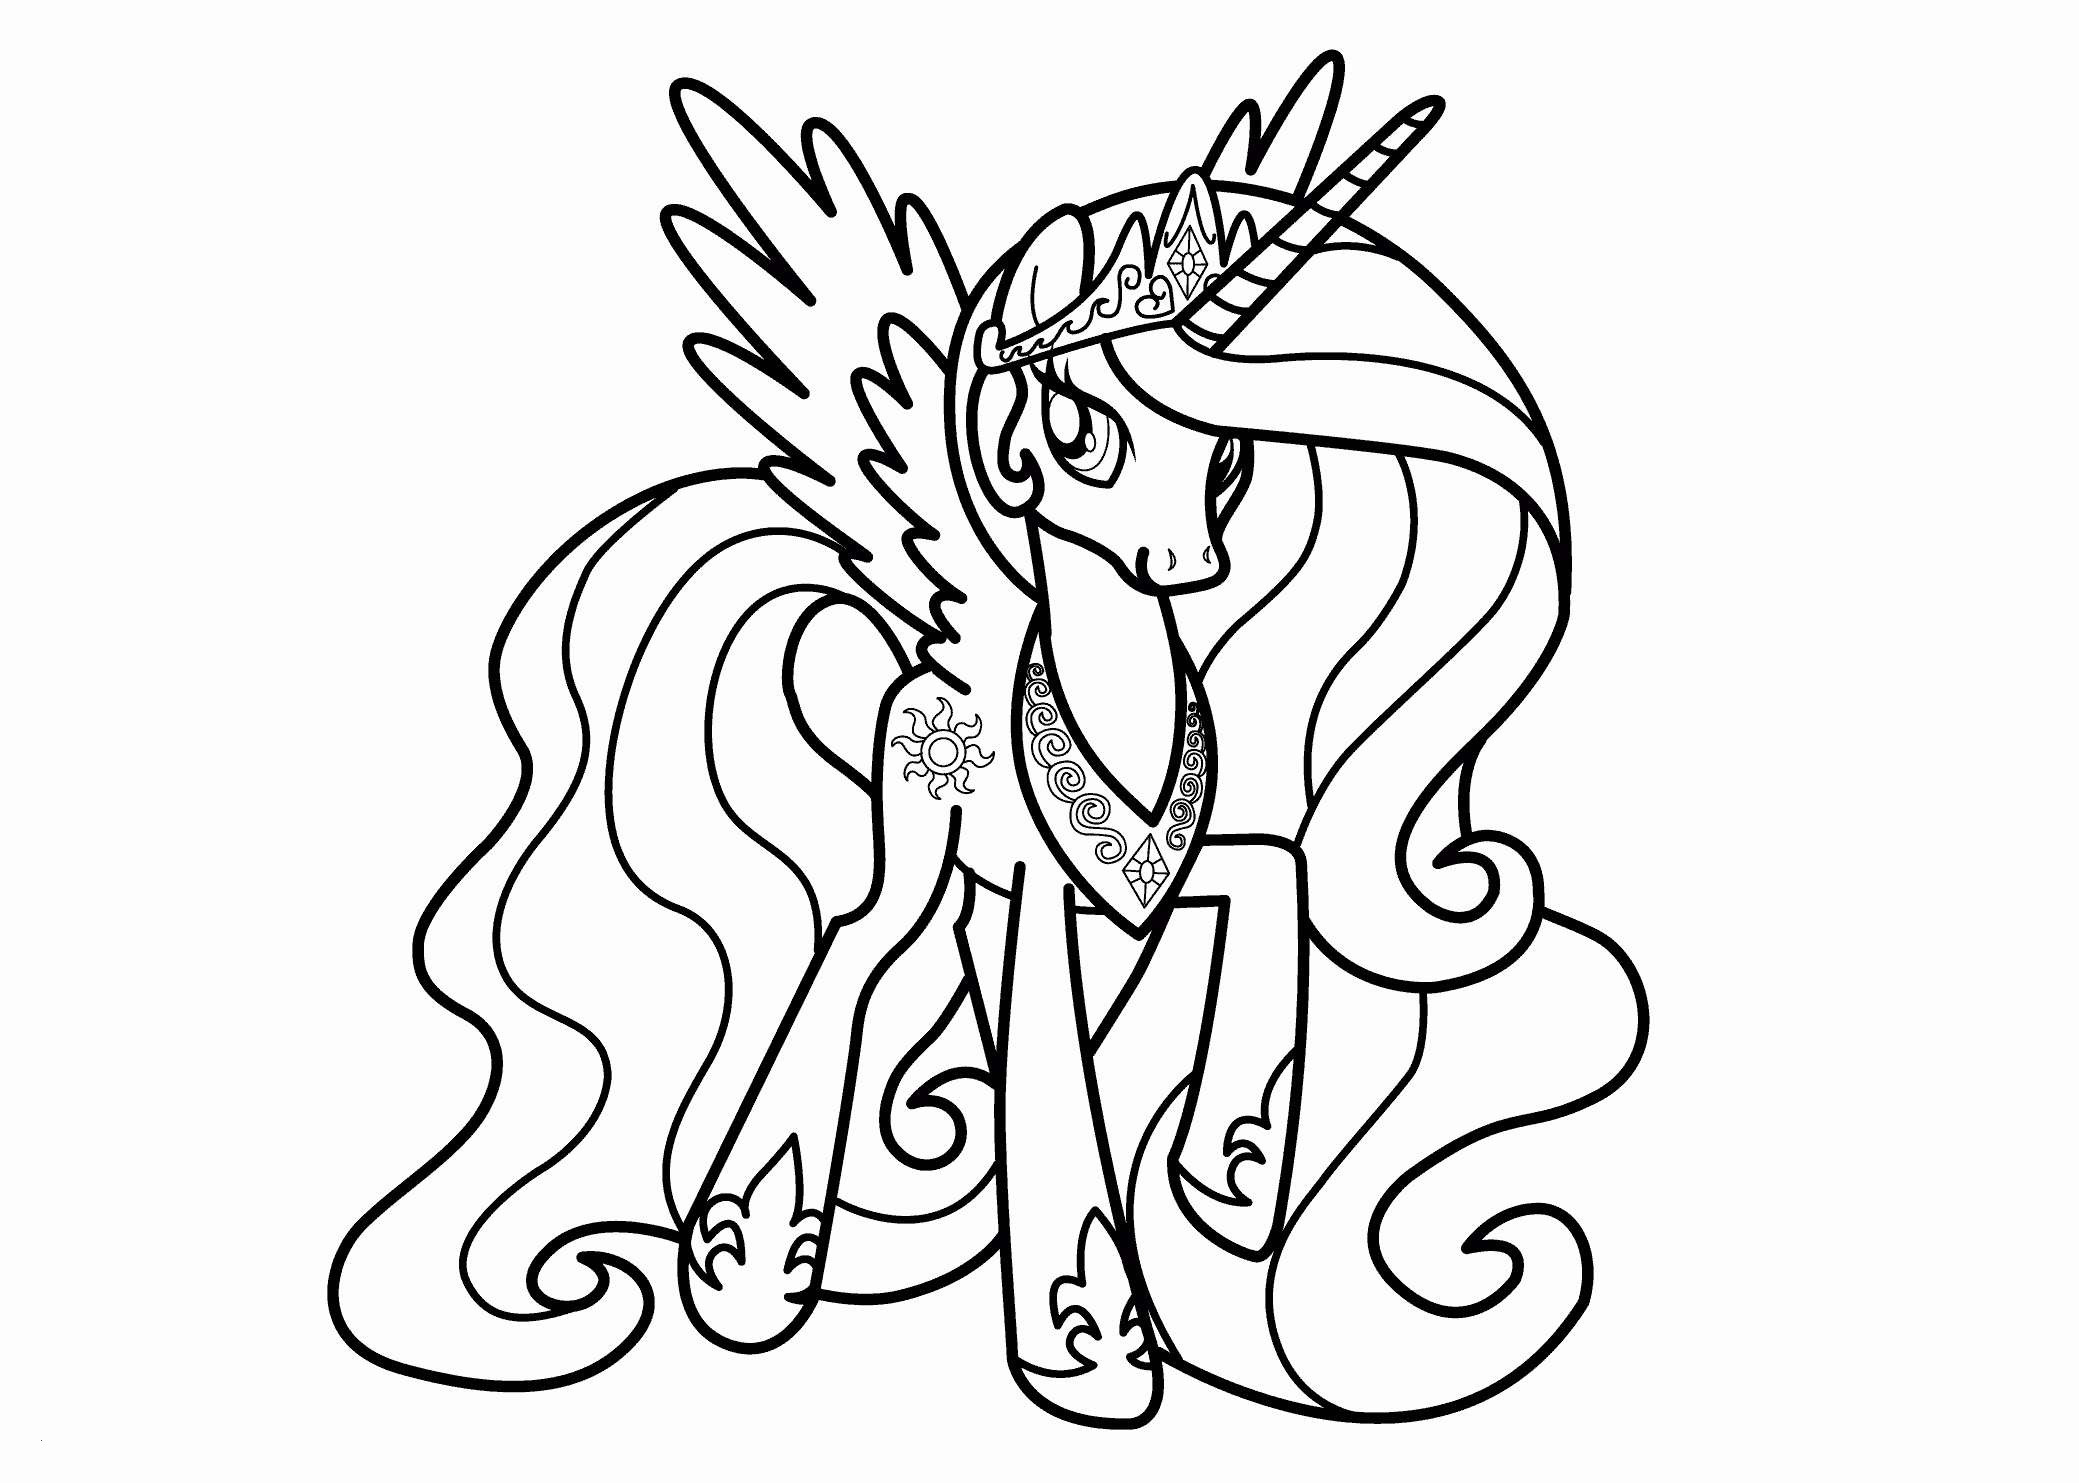 Ausmalbilder My Little Pony Equestria Girl Einzigartig Baby Princess Celestia Coloring Page Free Coloring Sheets Elegant Fotos